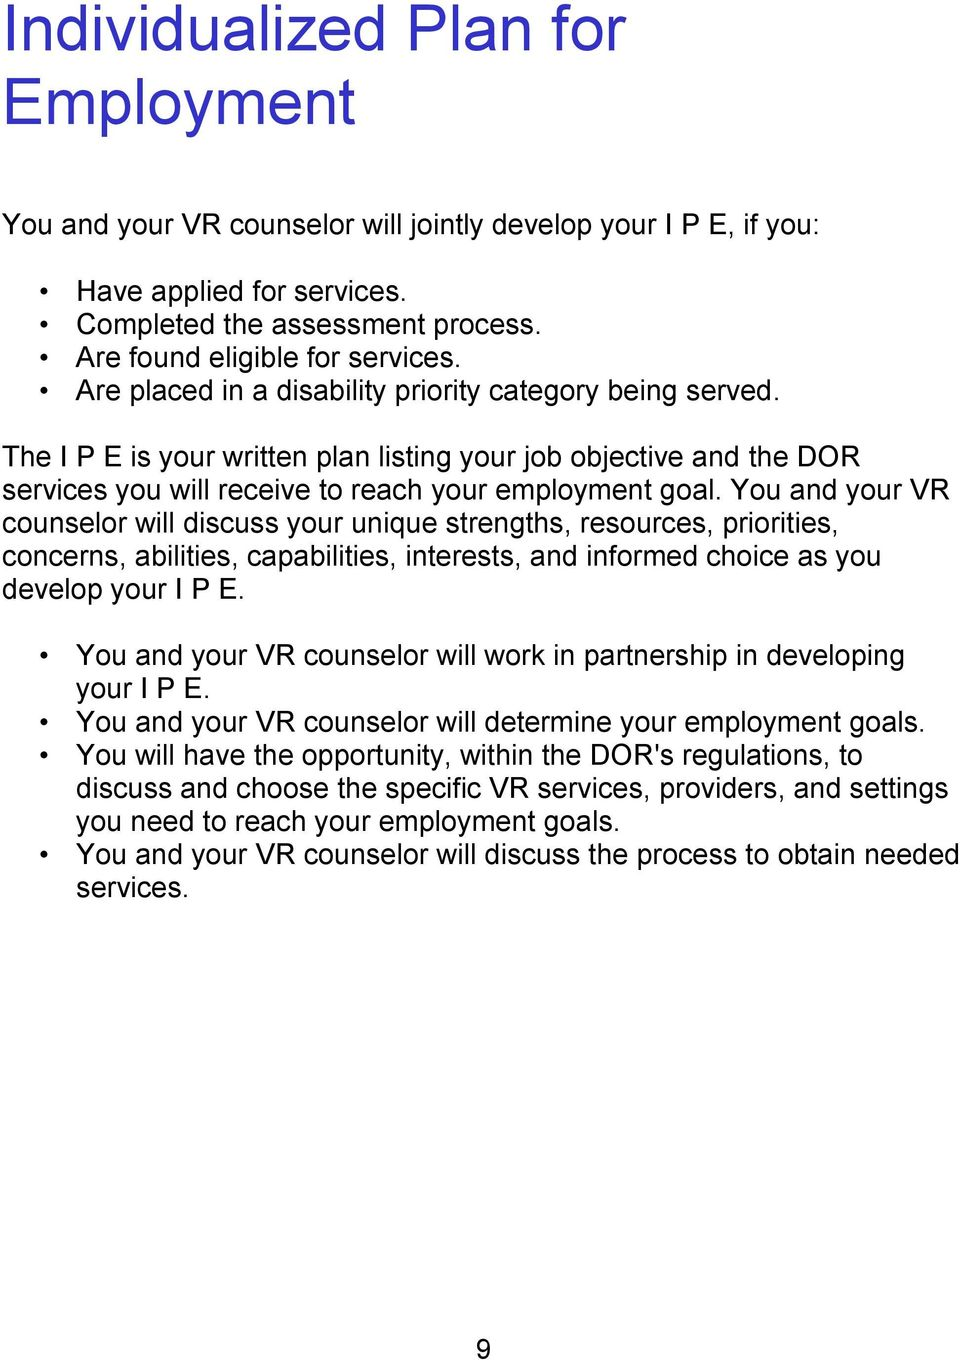 You and your VR counselor will discuss your unique strengths, resources, priorities, concerns, abilities, capabilities, interests, and informed choice as you develop your I P E.